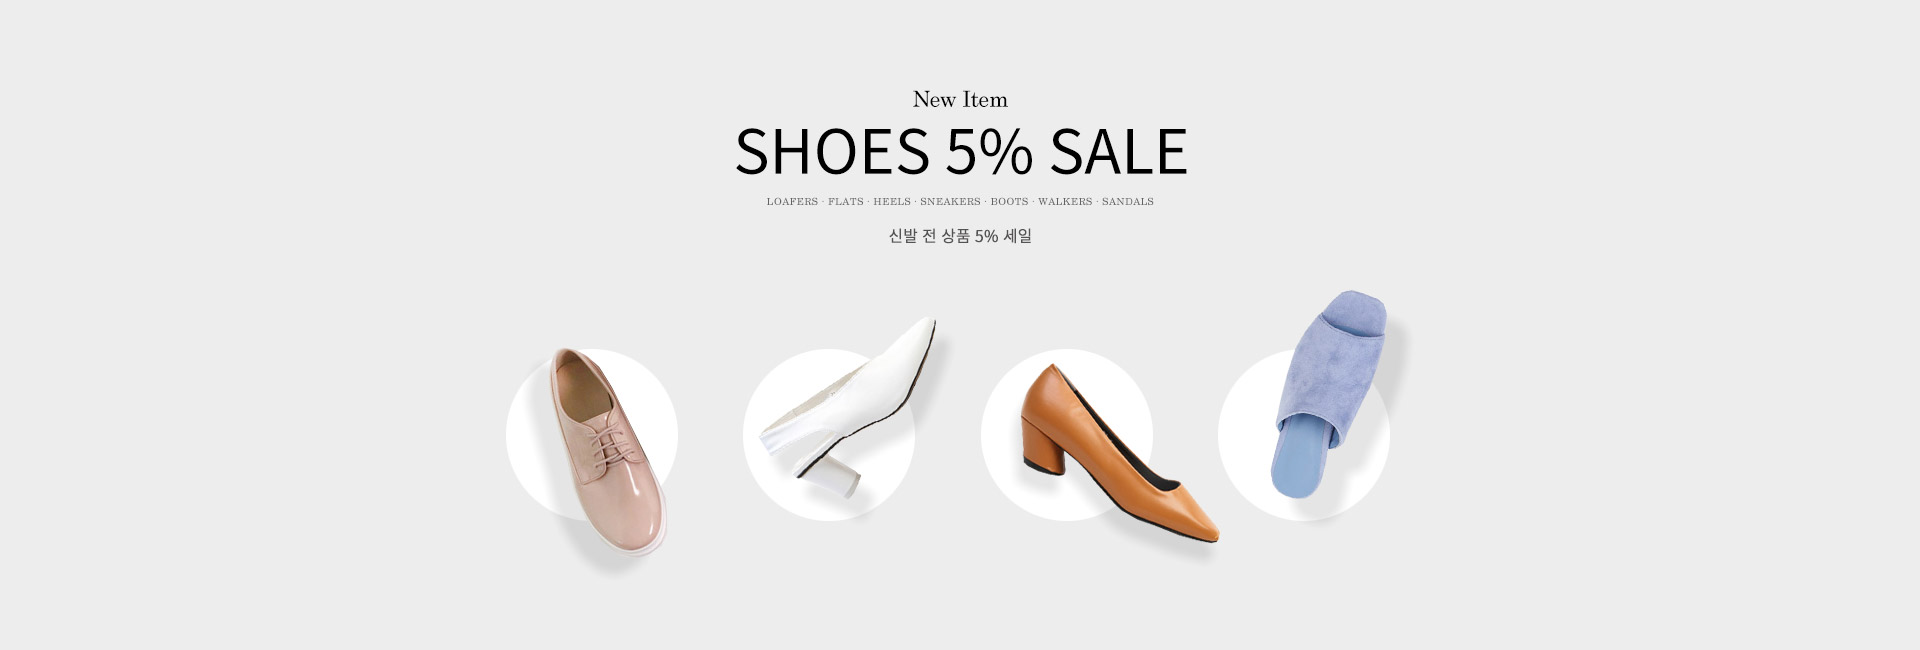 SHOES 5% SALE